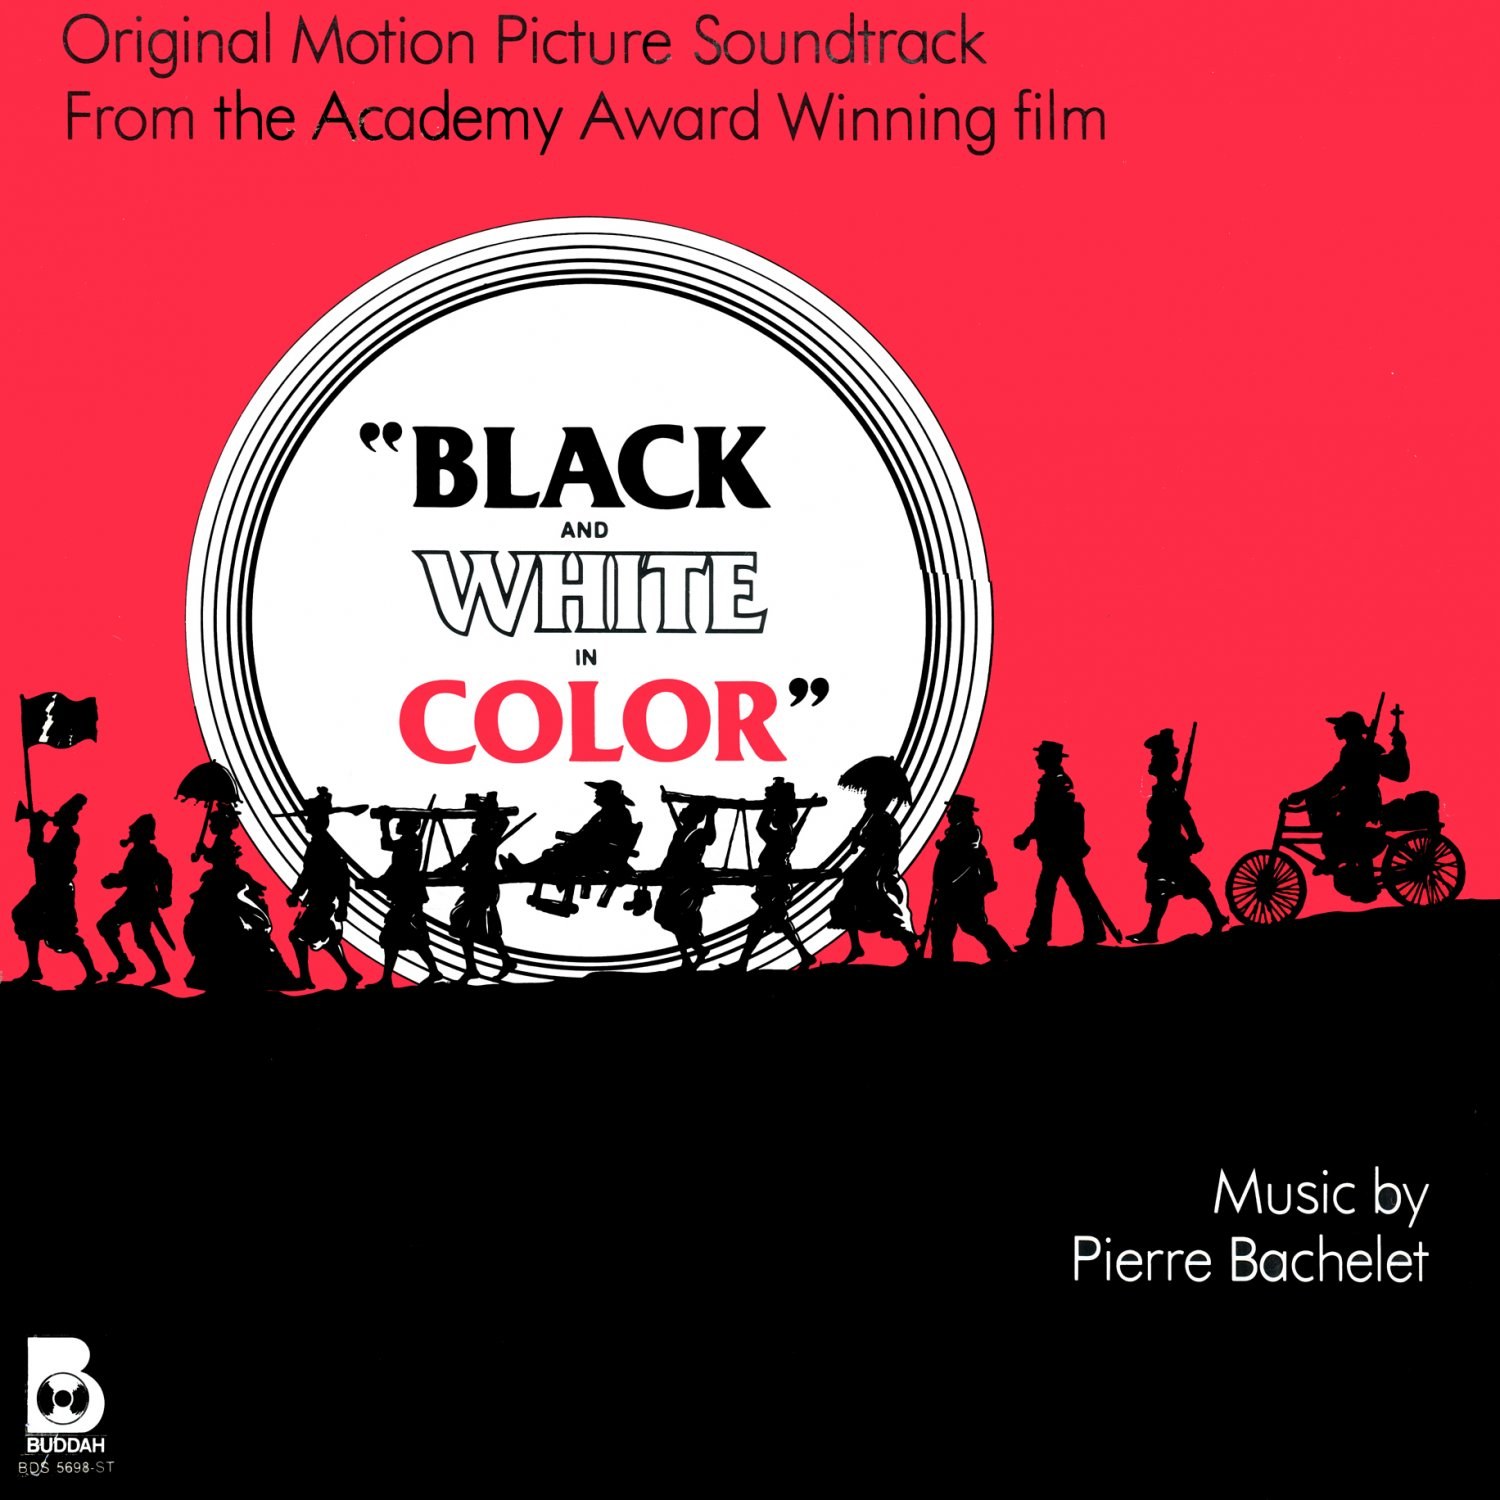 Black And White In Color - Original Soundtrack, Pierre Bachelet OST LP/CD